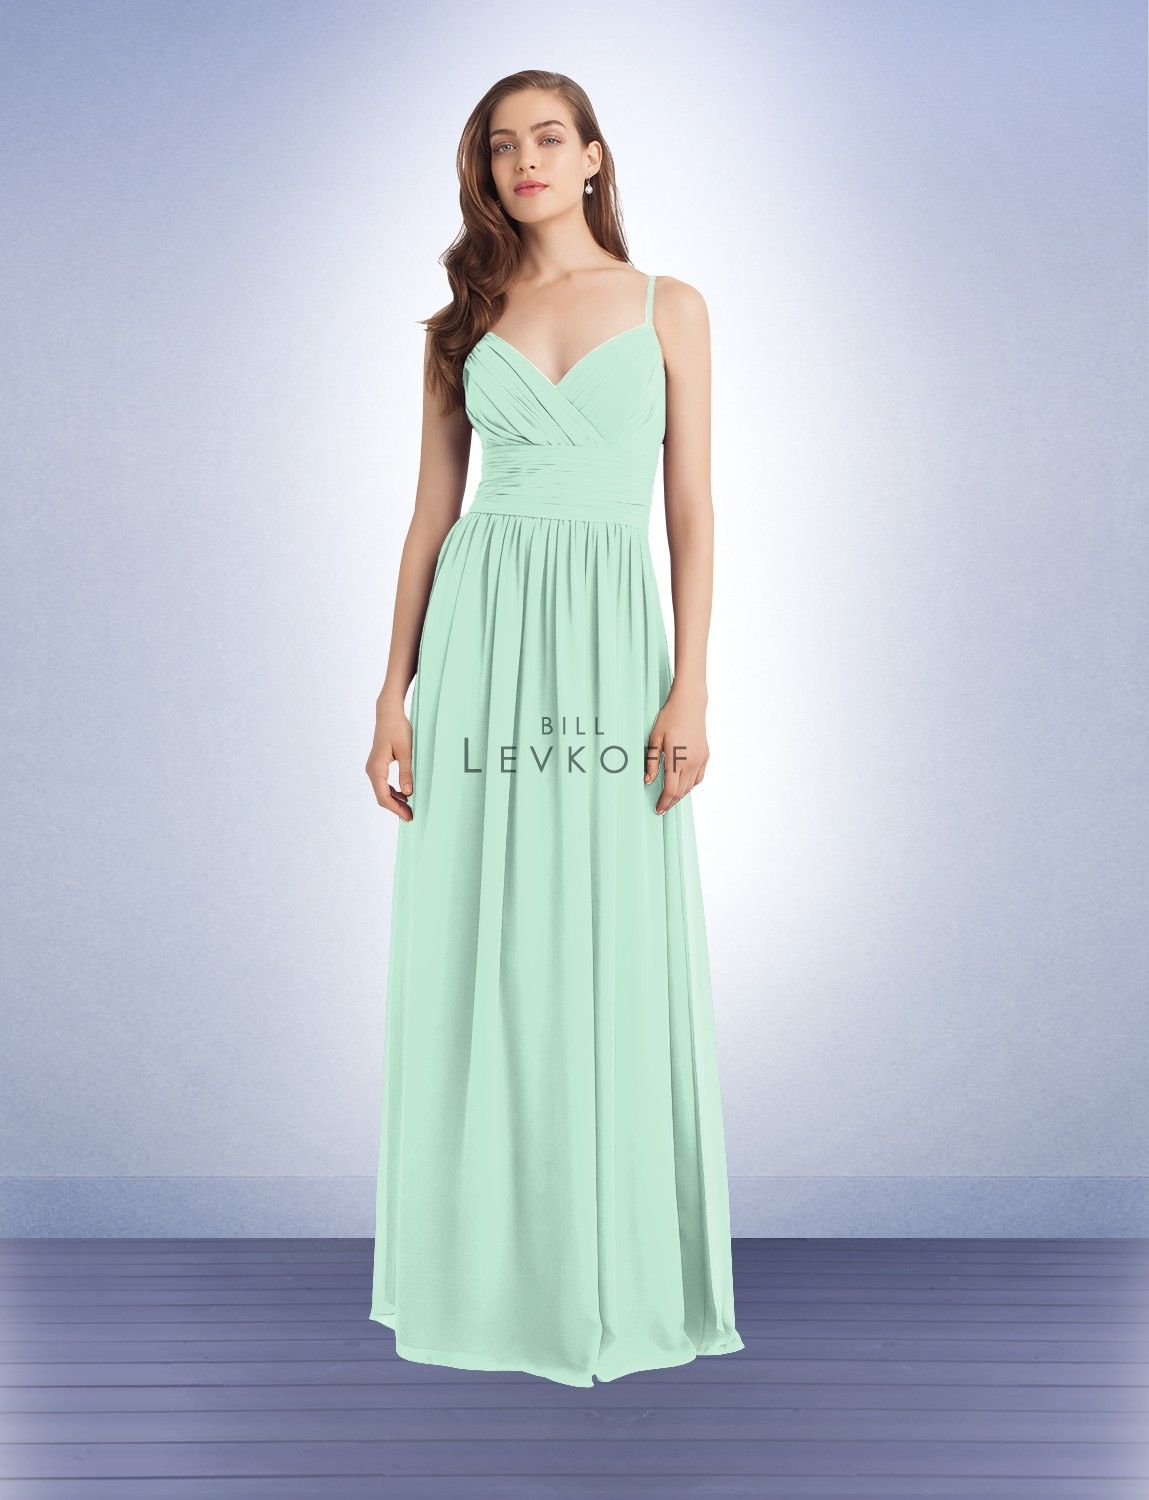 Bridesmaid dress style 1113 bridesmaid dresses by bill levkoff bridesmaid dress style 1113 bridesmaid dresses by bill levkoff ombrellifo Gallery